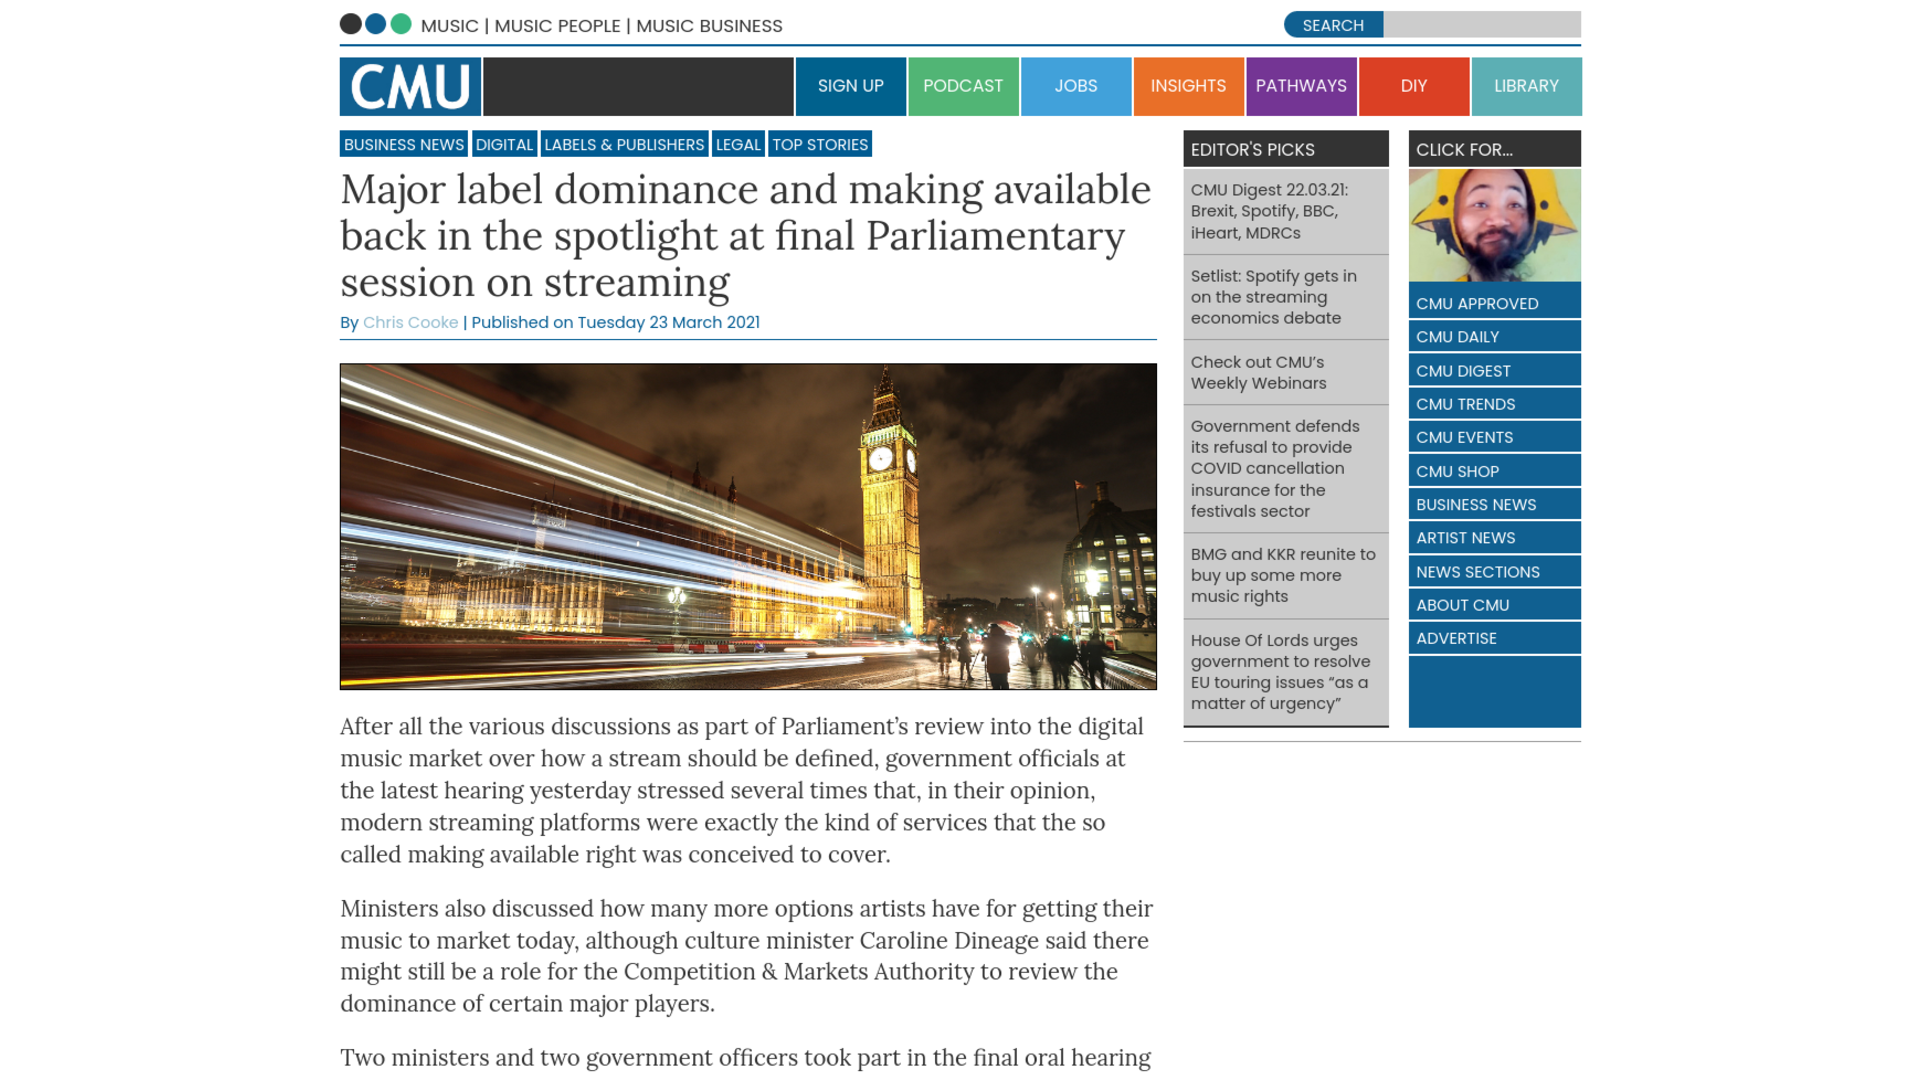 Fairness Rocks News Major label dominance and making available back in the spotlight at final Parliamentary session on streaming